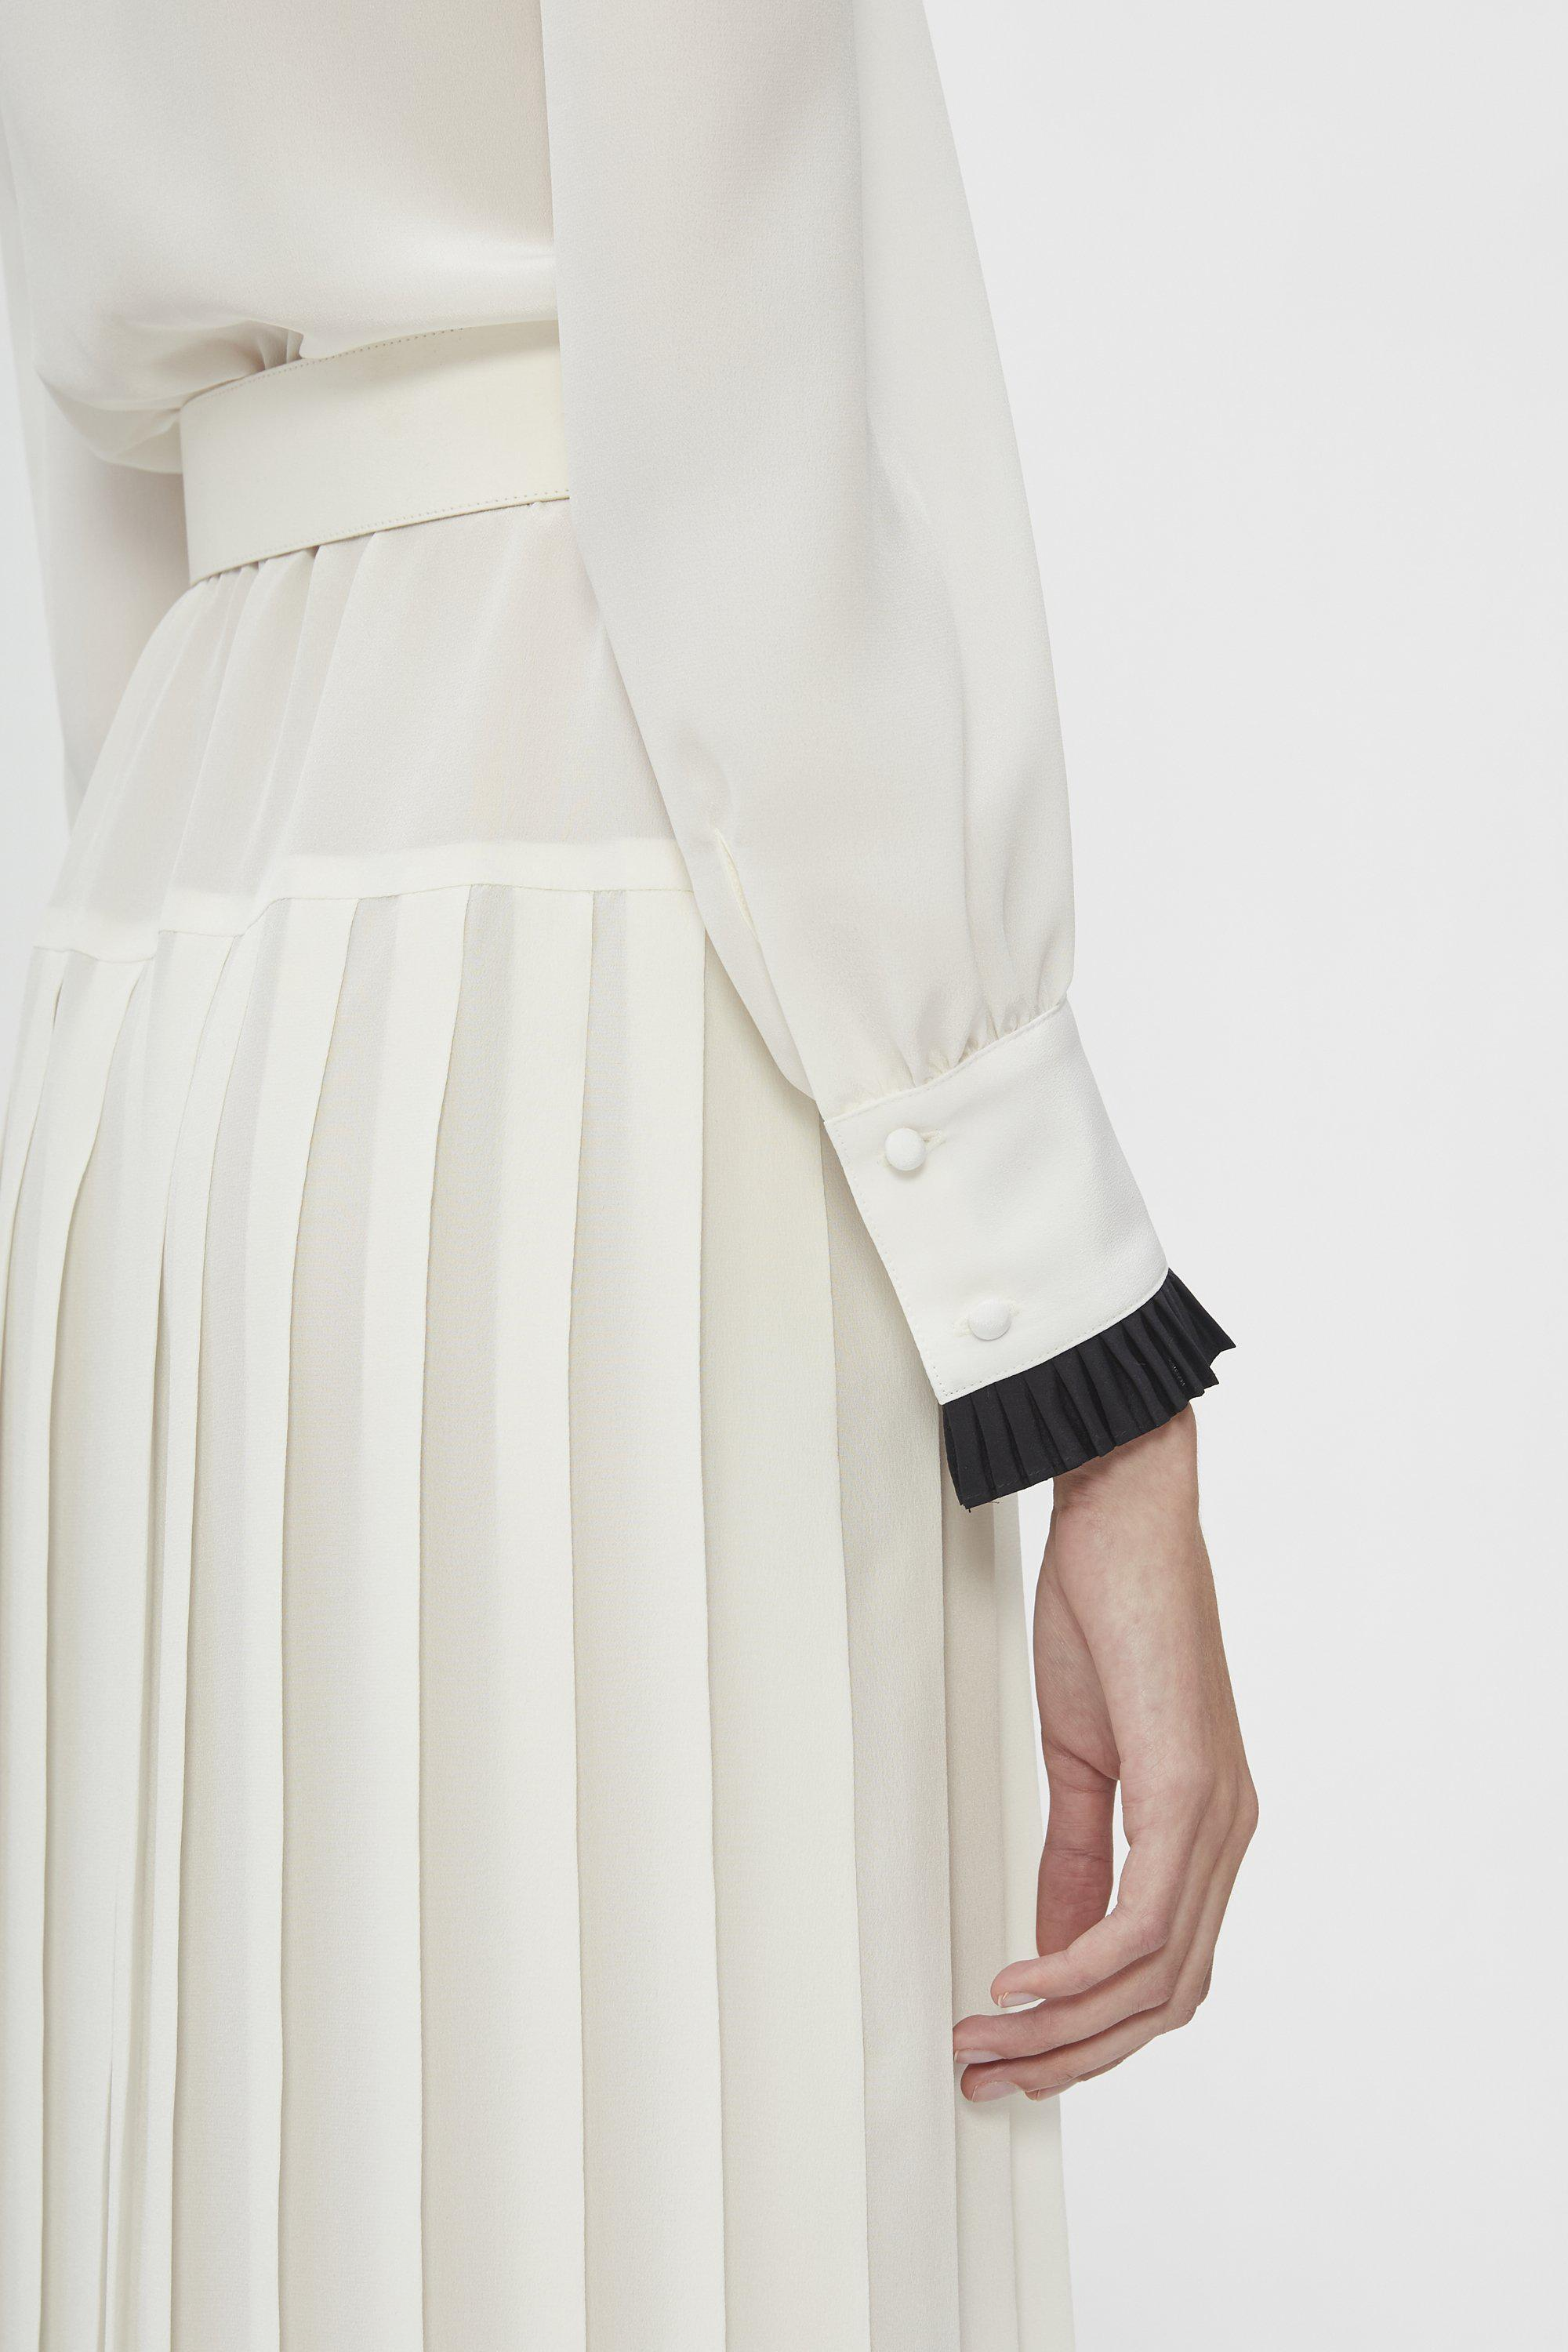 OFF WHITE AND BLACK BELTED SILK PLEATED COLLAR DRESS 4